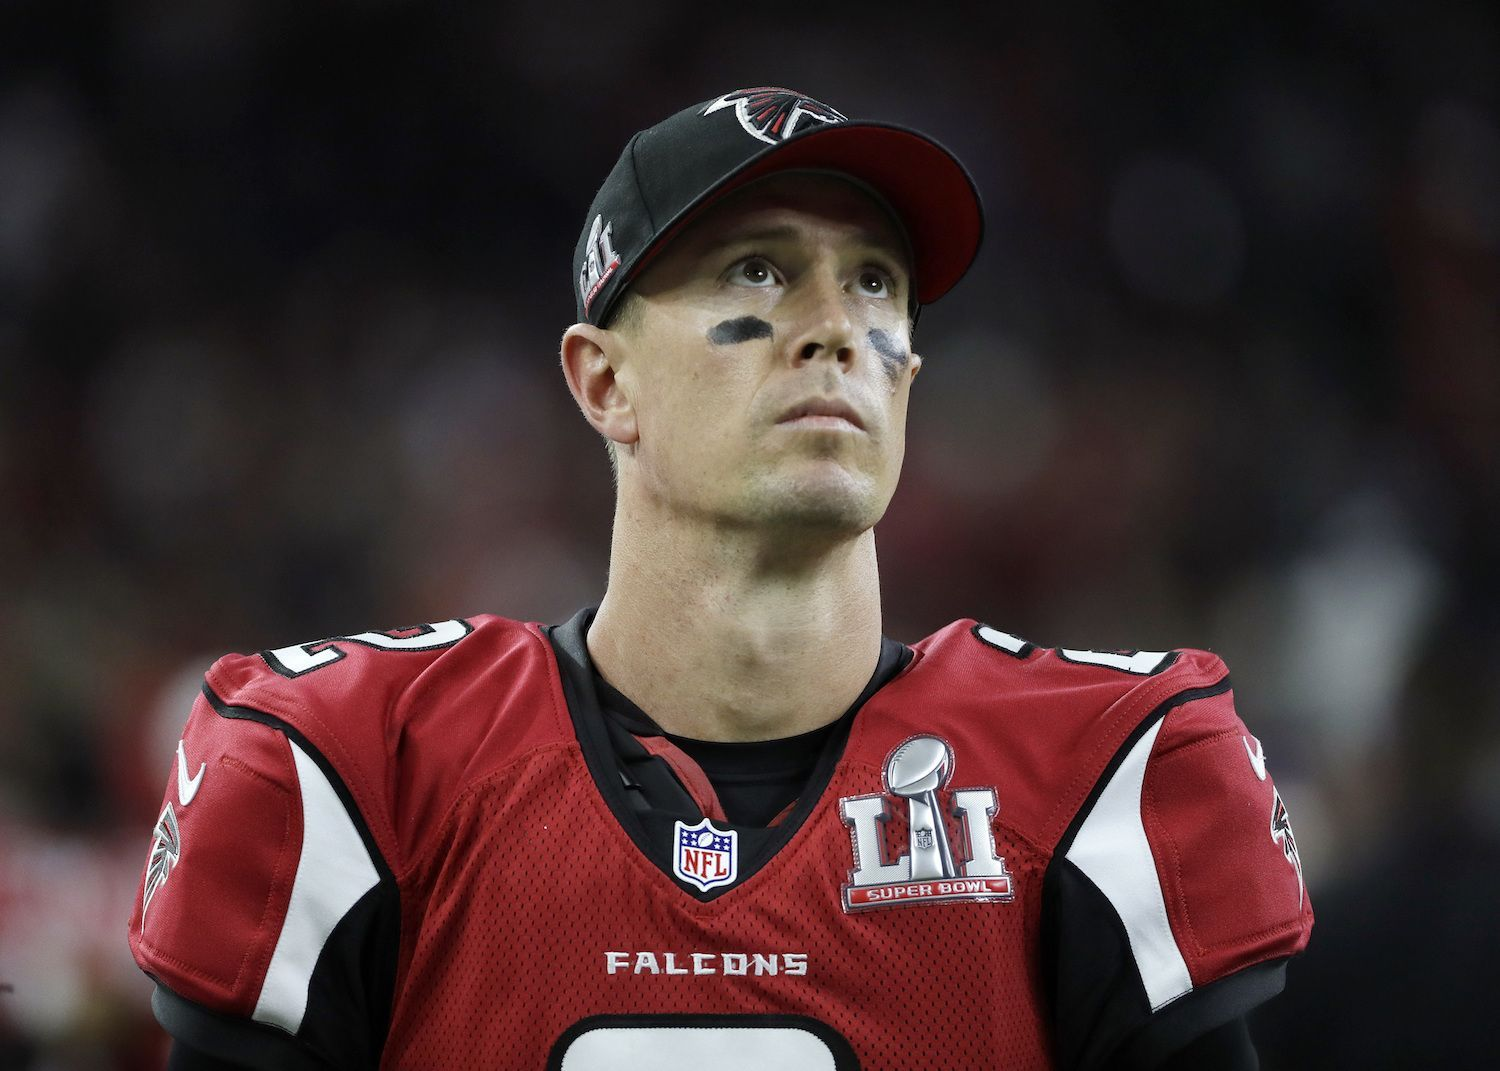 The Falcons Choked Away A Super Bowl Win Thanks To One Baffling Drive